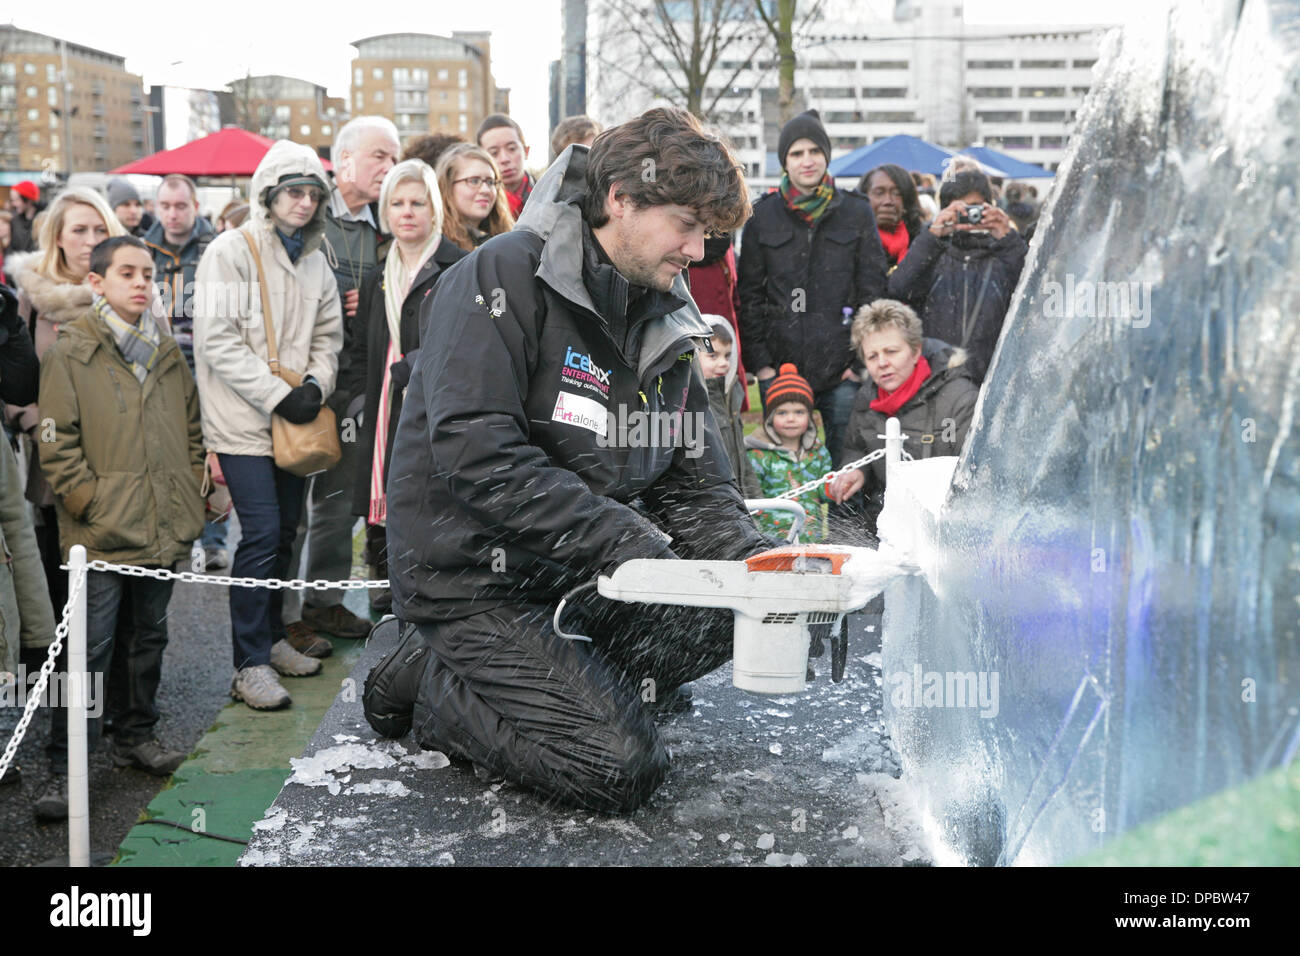 London, UK.11th January 2014. A sculpter at work at  the London Ice Sculpting Festival Credit: Keith Larby/Alamy Live News - Stock Image